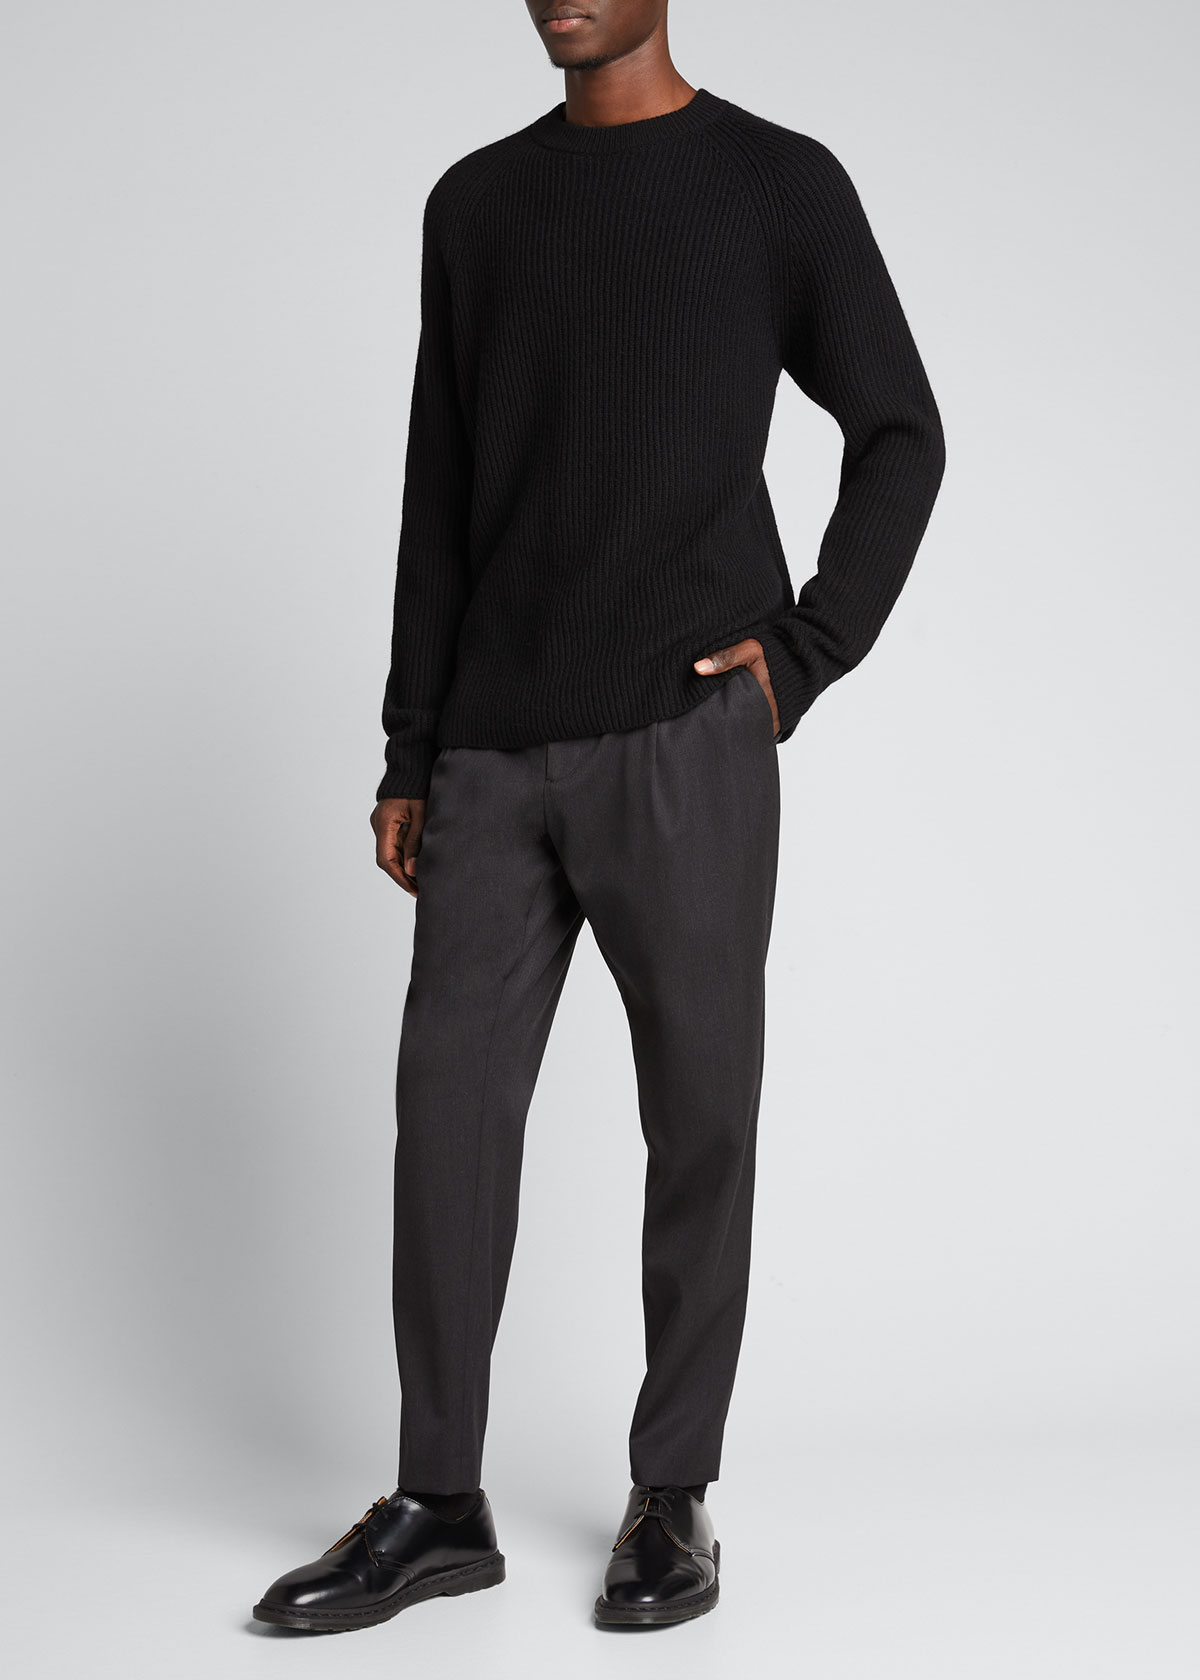 The Row MEN'S THIERRY SOLID RIBBED CREW SWEATER